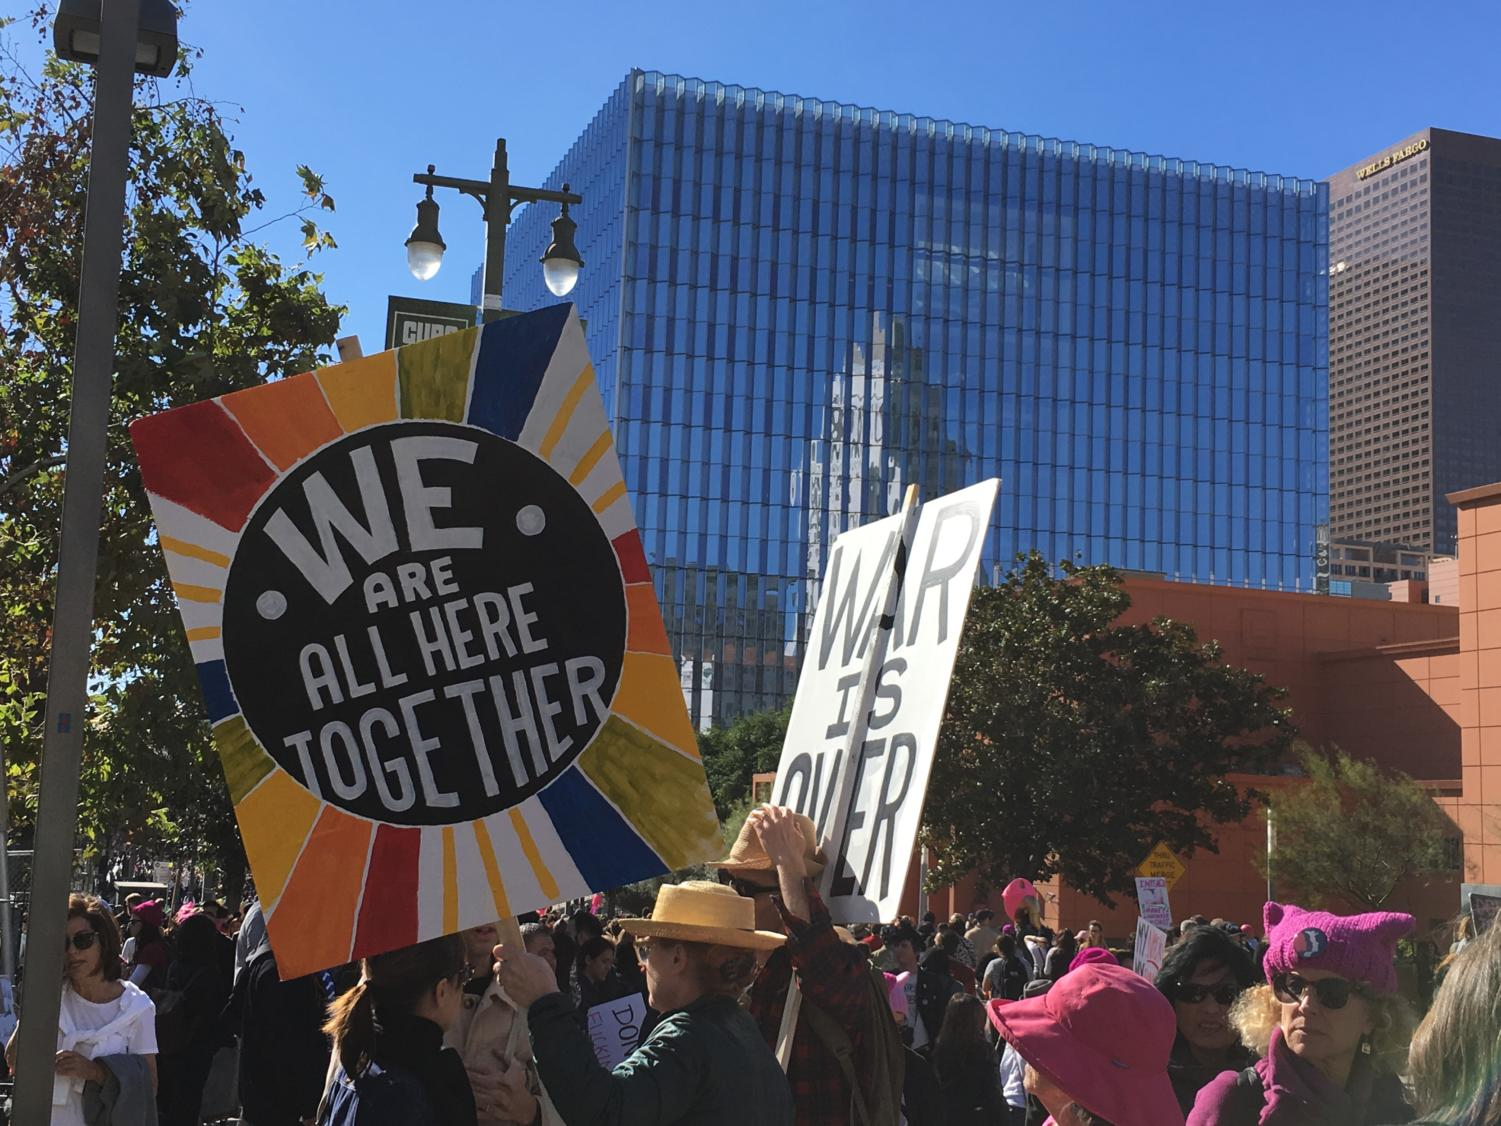 Marchers gathered in Los Angeles California for the 2018 Women's March to protest inequality and other social injustices.